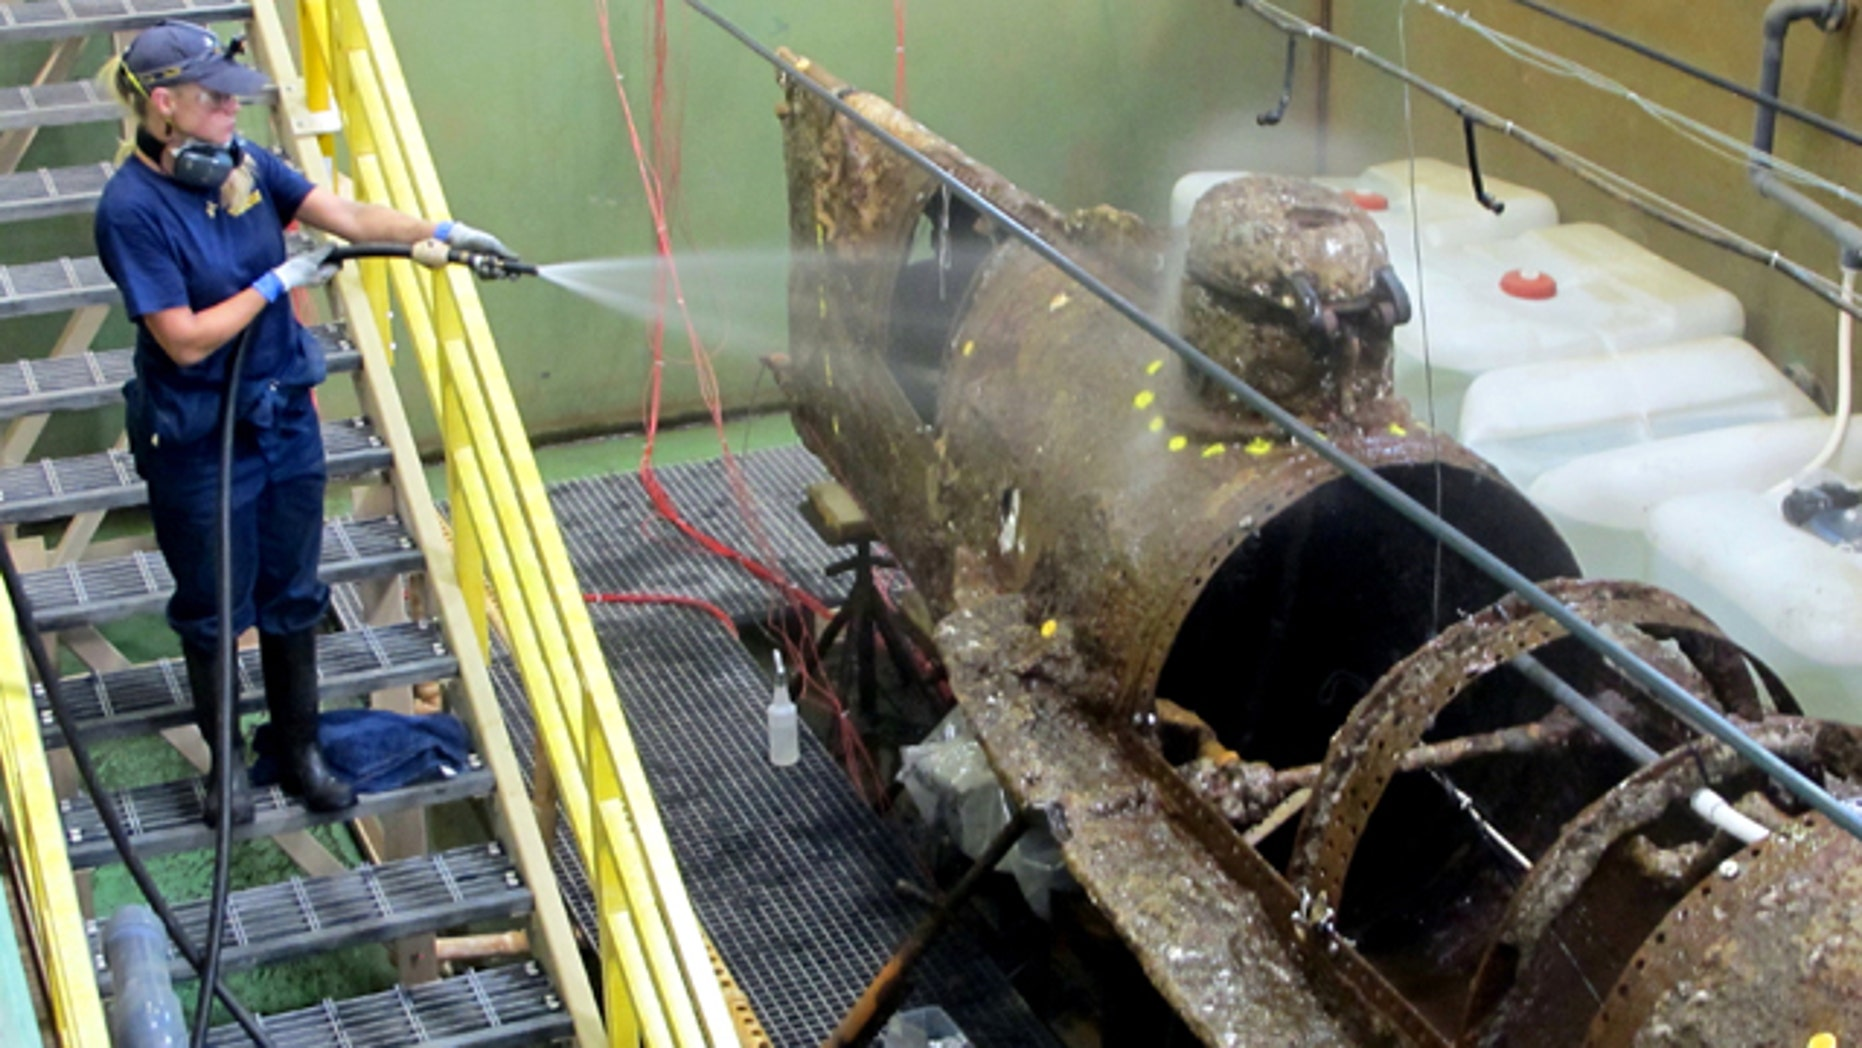 August 12, 2014: Conservator Lisa Nasanen uses a hose to wet down the hull of the Confederate submarine H.L. Hunley at the Warren Lasch Conservation Center in North Charleston, S.C. After the submarine sat in a chemical bath for more than three months to help loosen the encrustation, scientists on Tuesday began the laborious job of removing the built-up sediment by hand. The work is expected to take between eight months and a year and scientists hope that when the hull is revealed, it will provide the final clues as to why the hand-cranked sub, the first in history to sink an enemy warship, sank off South Carolina in 1864.  (AP Photo/Bruce Smith)